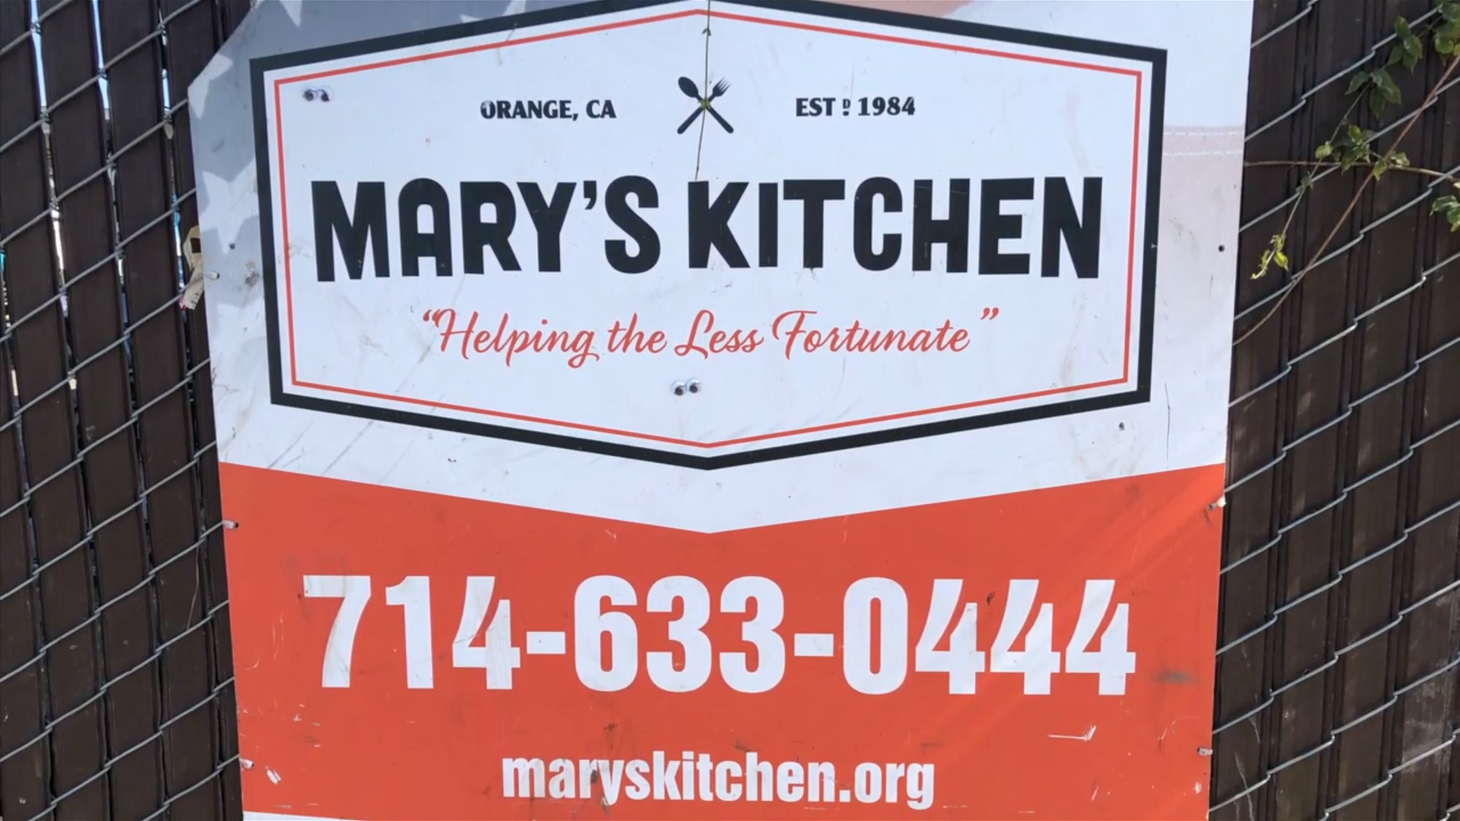 The City of Orange has ordered Mary's Kitchen to stop its services and vacate its lot this Saturday. Organizers have created a petition to save it.